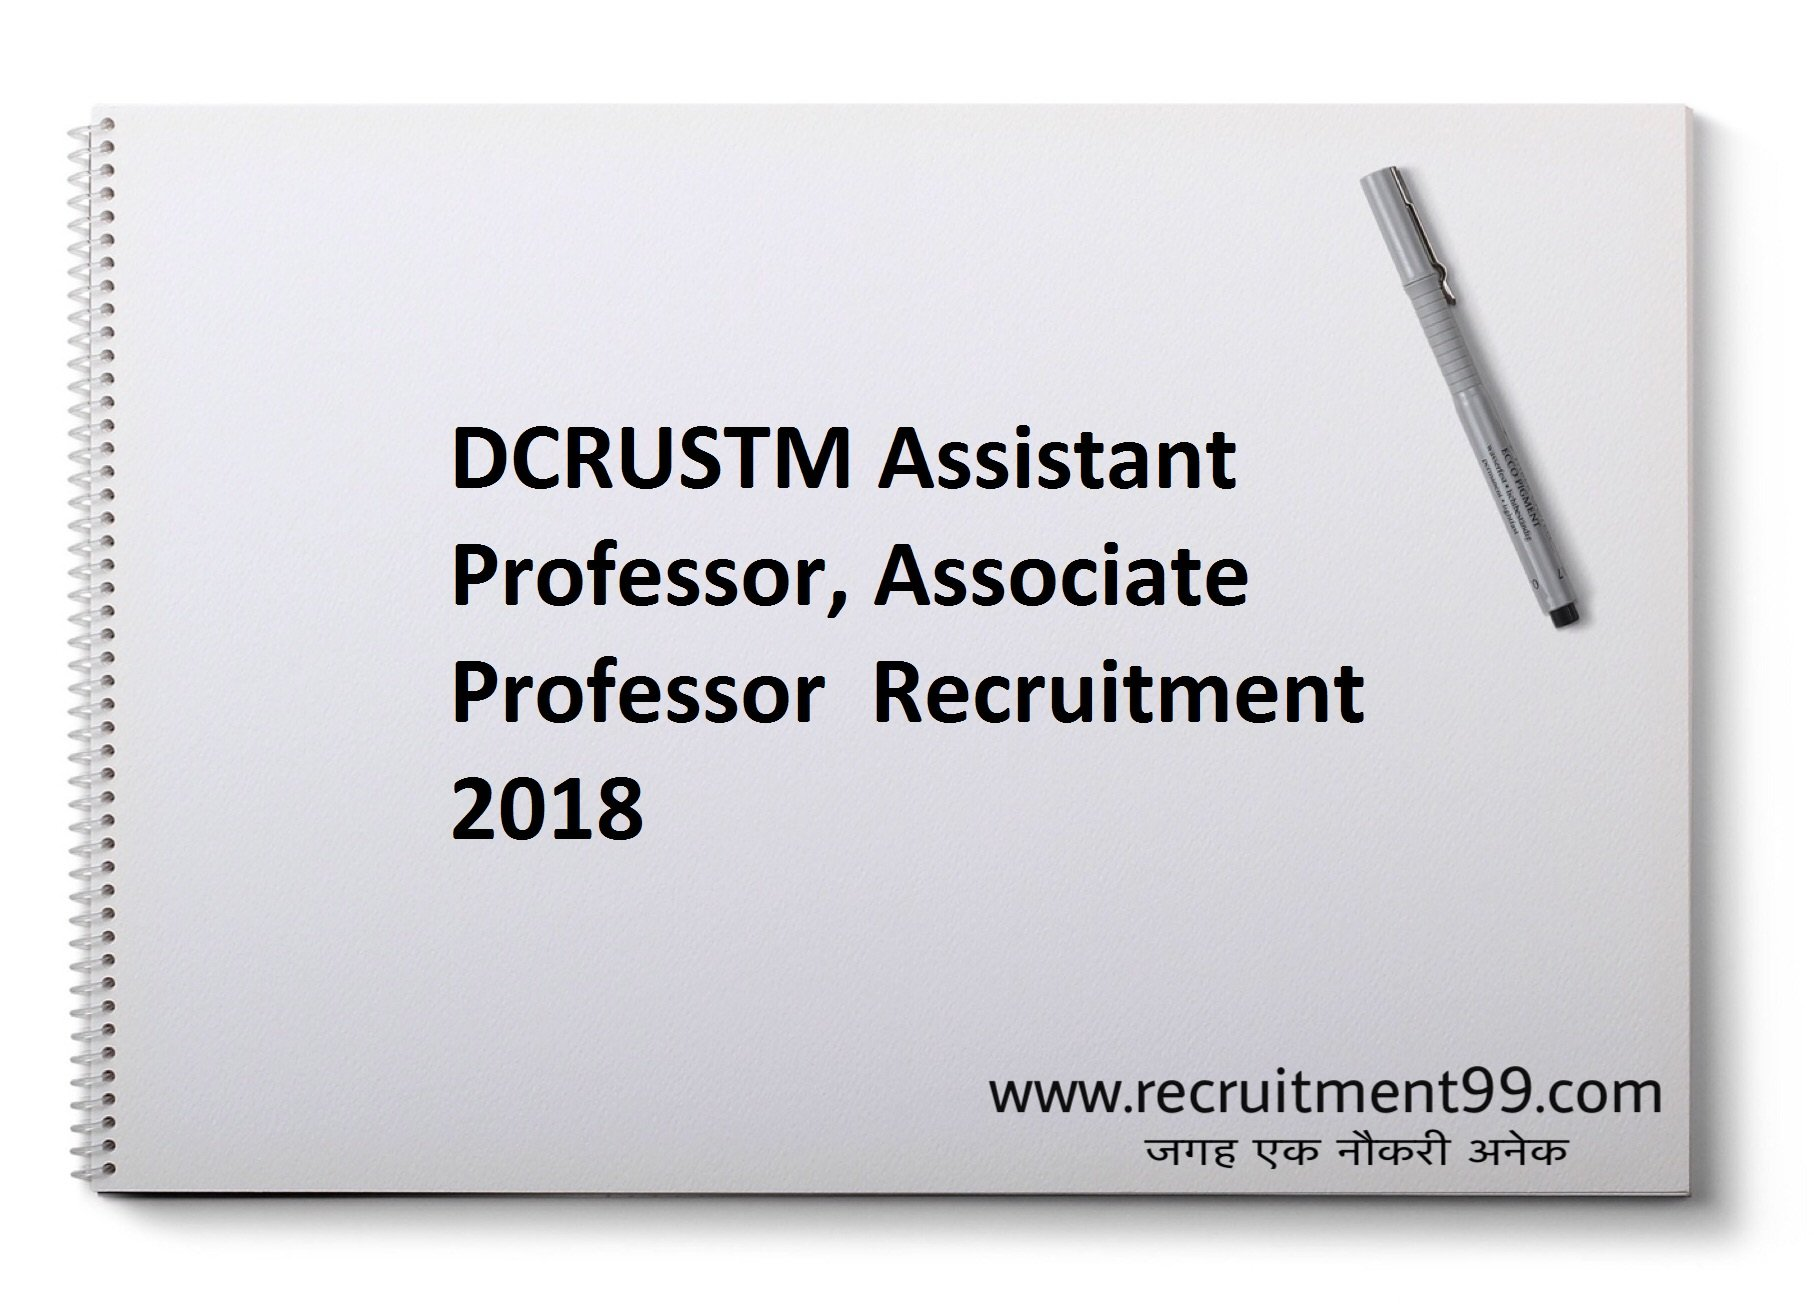 DCRUSTM Assistant Professor Associate Professor professor Recruitment Admit Card Result 2018